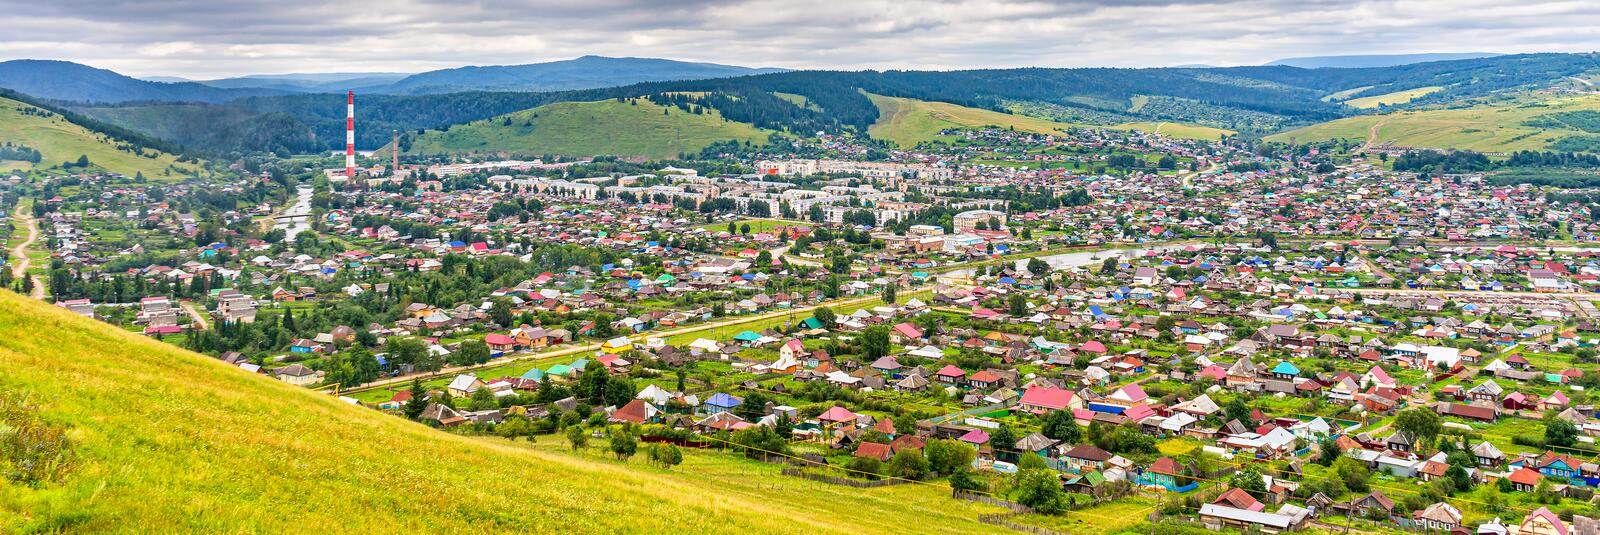 Panoramic view from hill to plain with small town in summer cloudy day. Picturesque urban landscape with many colorful houses. Sim royalty free stock photography